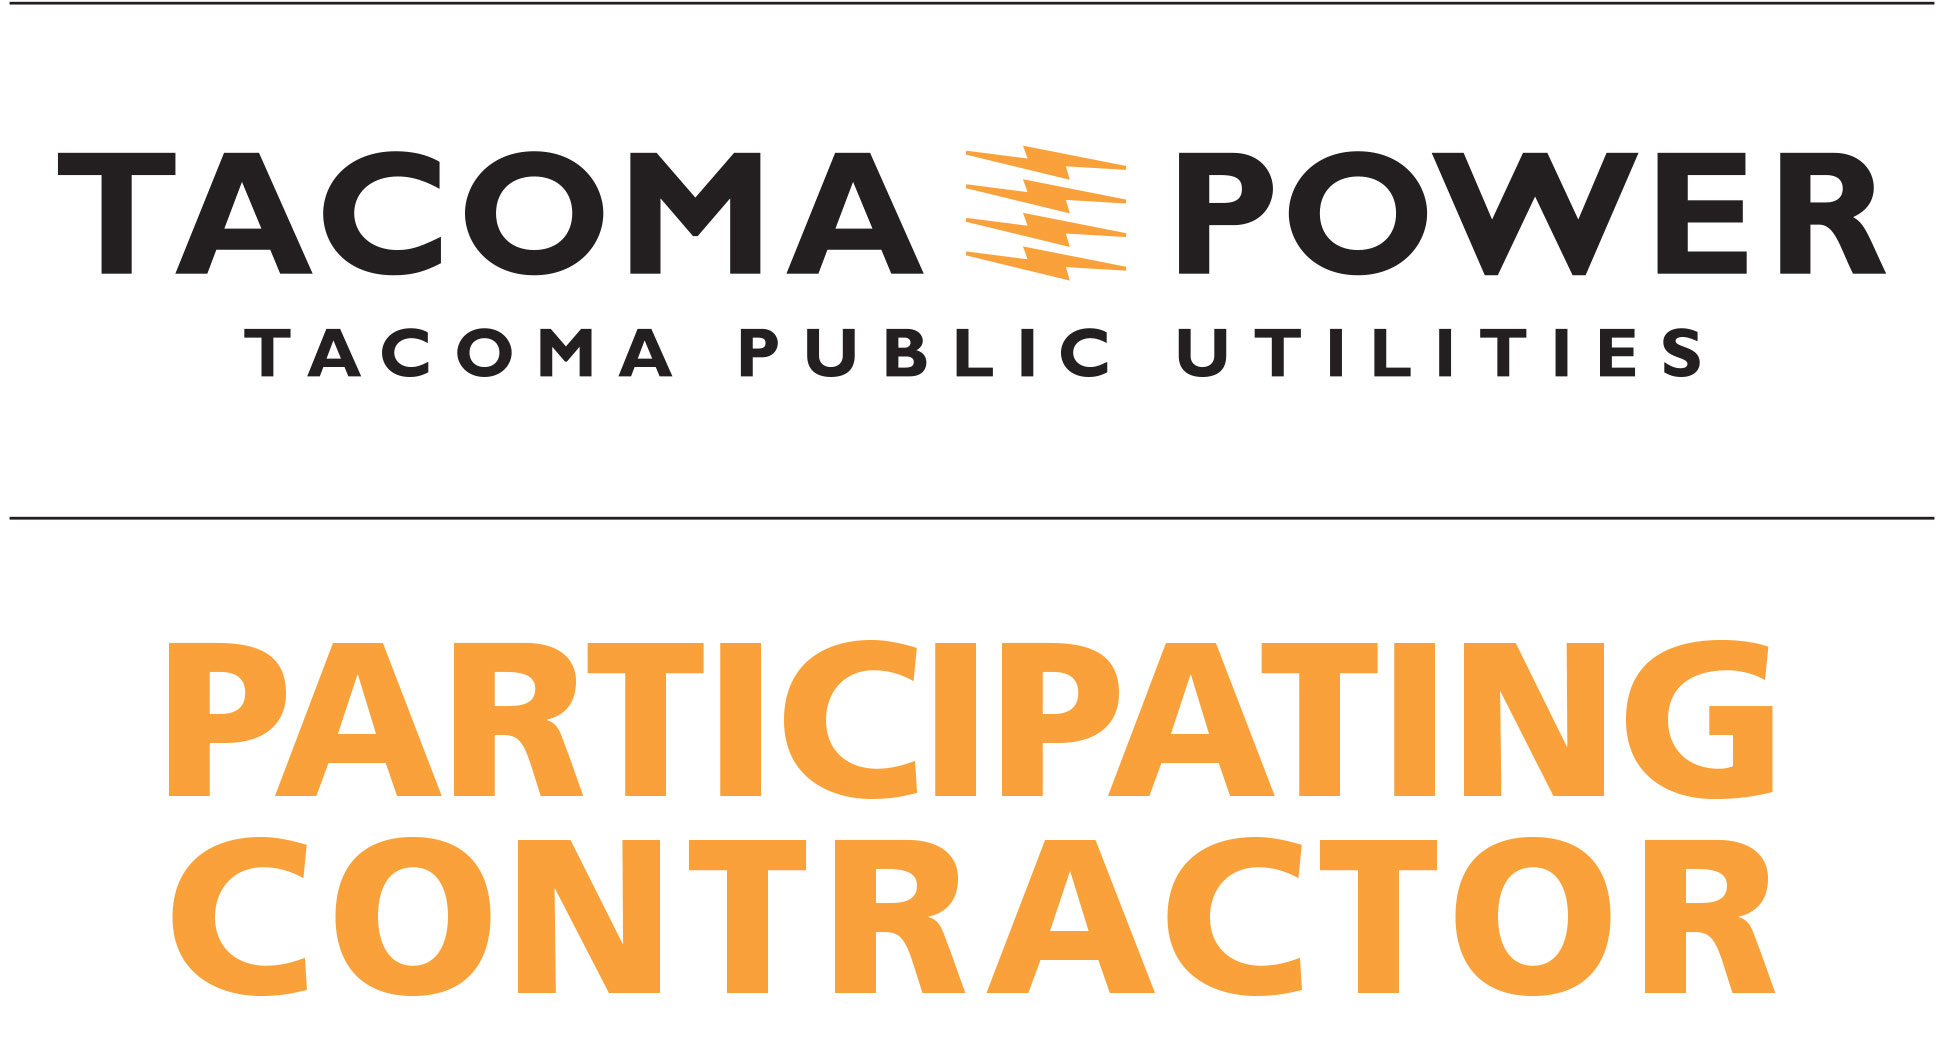 Tacoma Power Participating Contractor